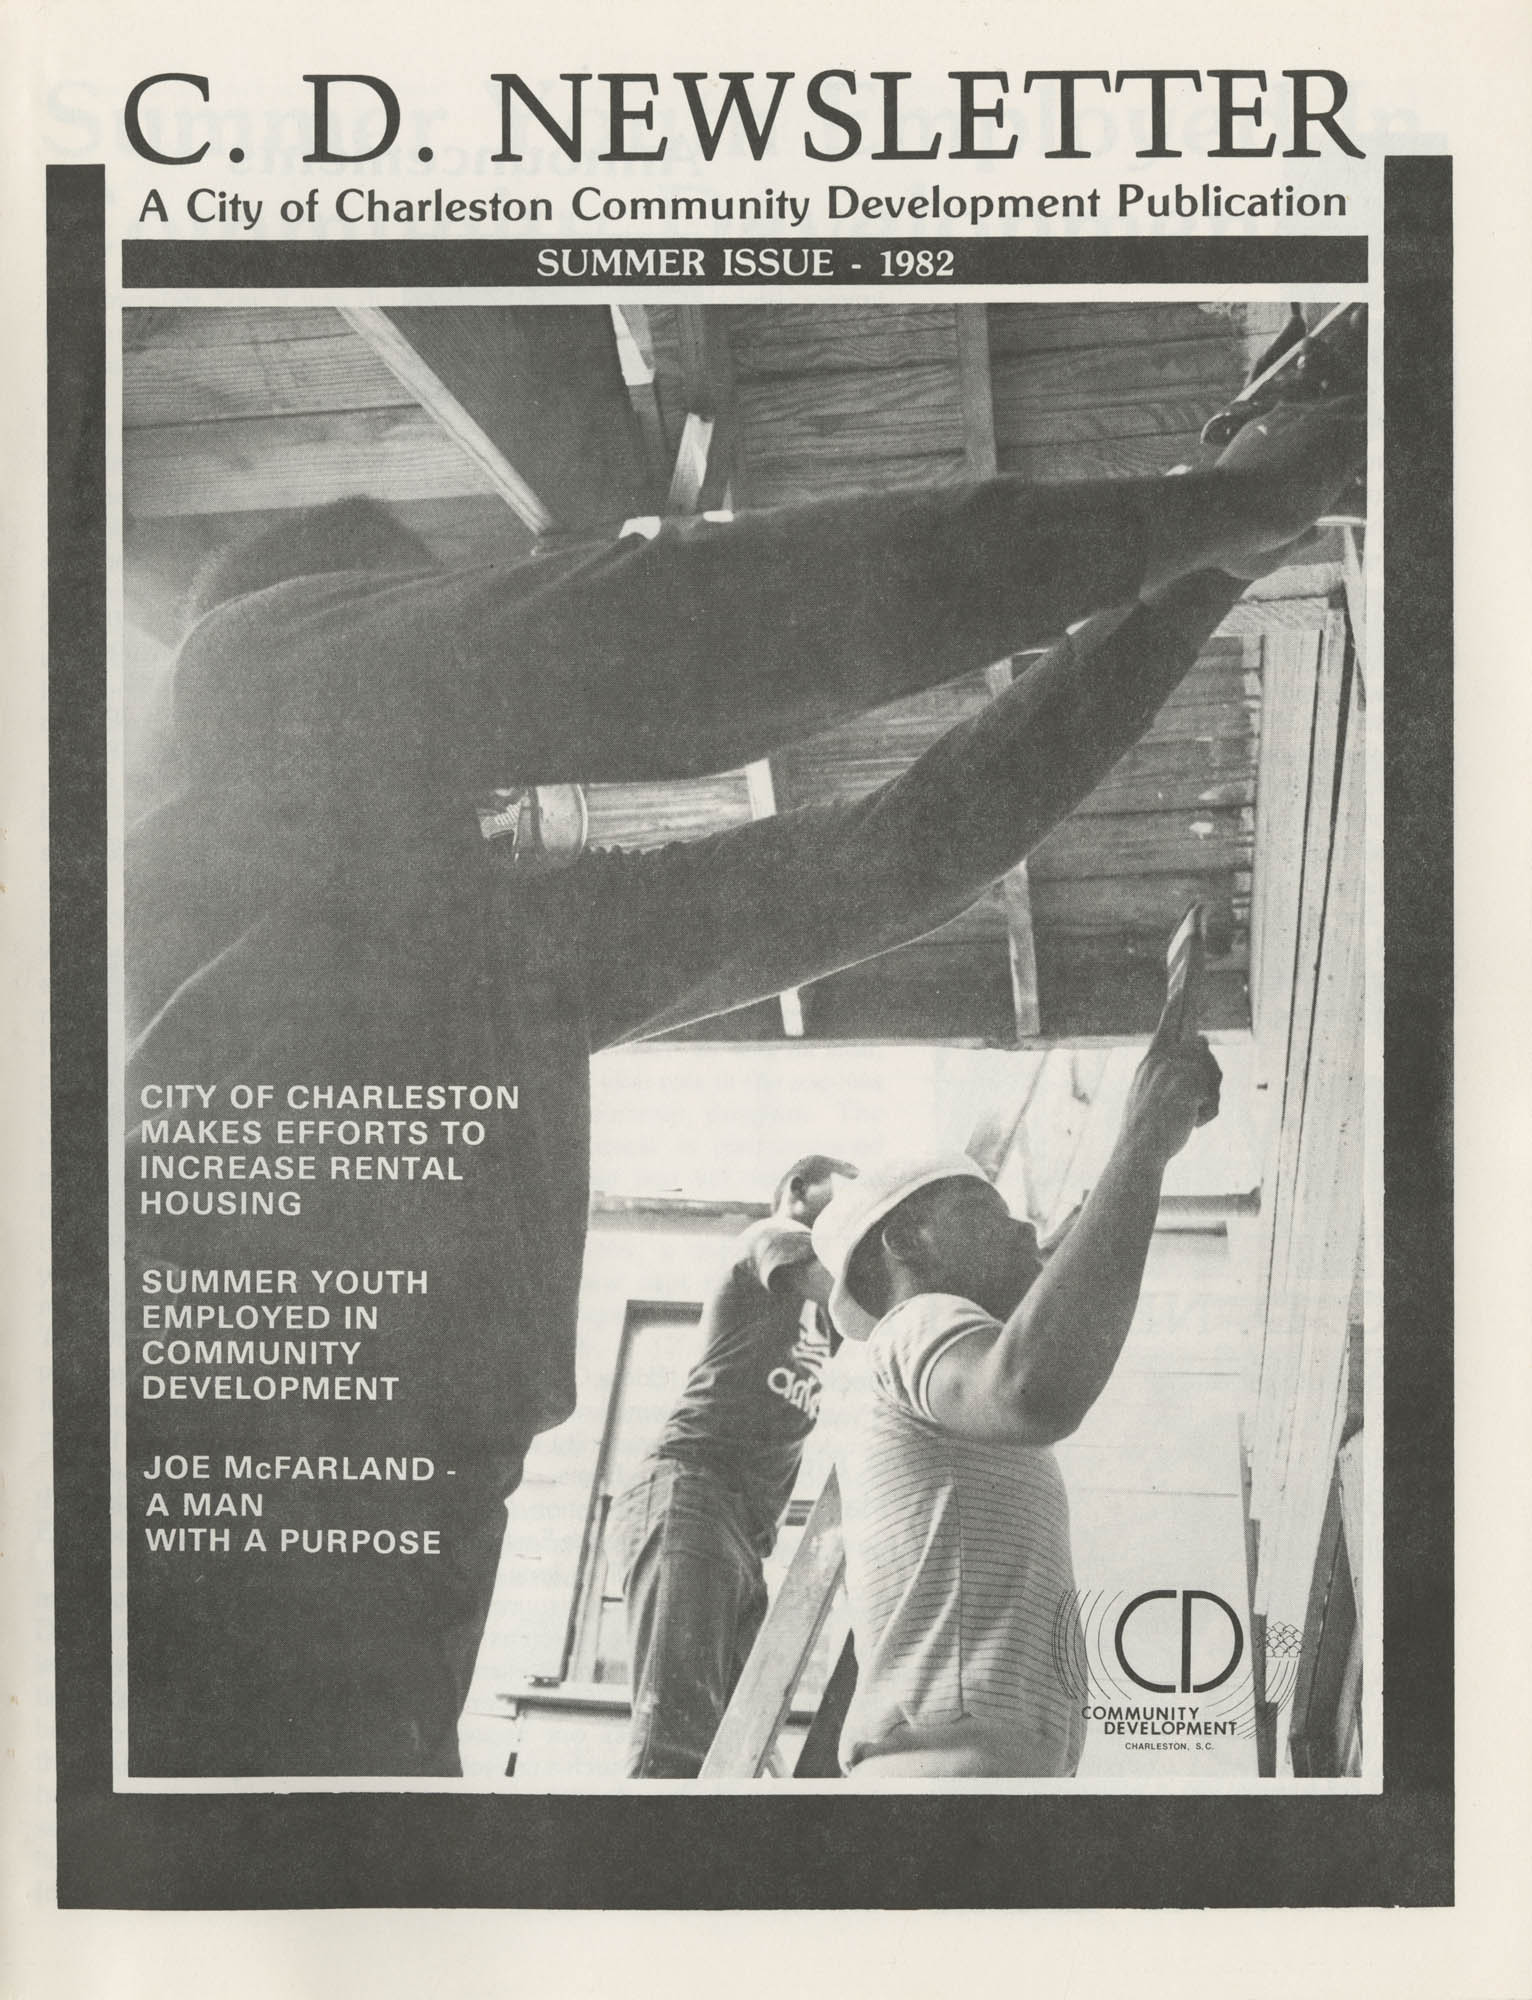 C. D. Newsletter, A City of Charleston Community Development Publication, Summer Issue - 1982, Cover